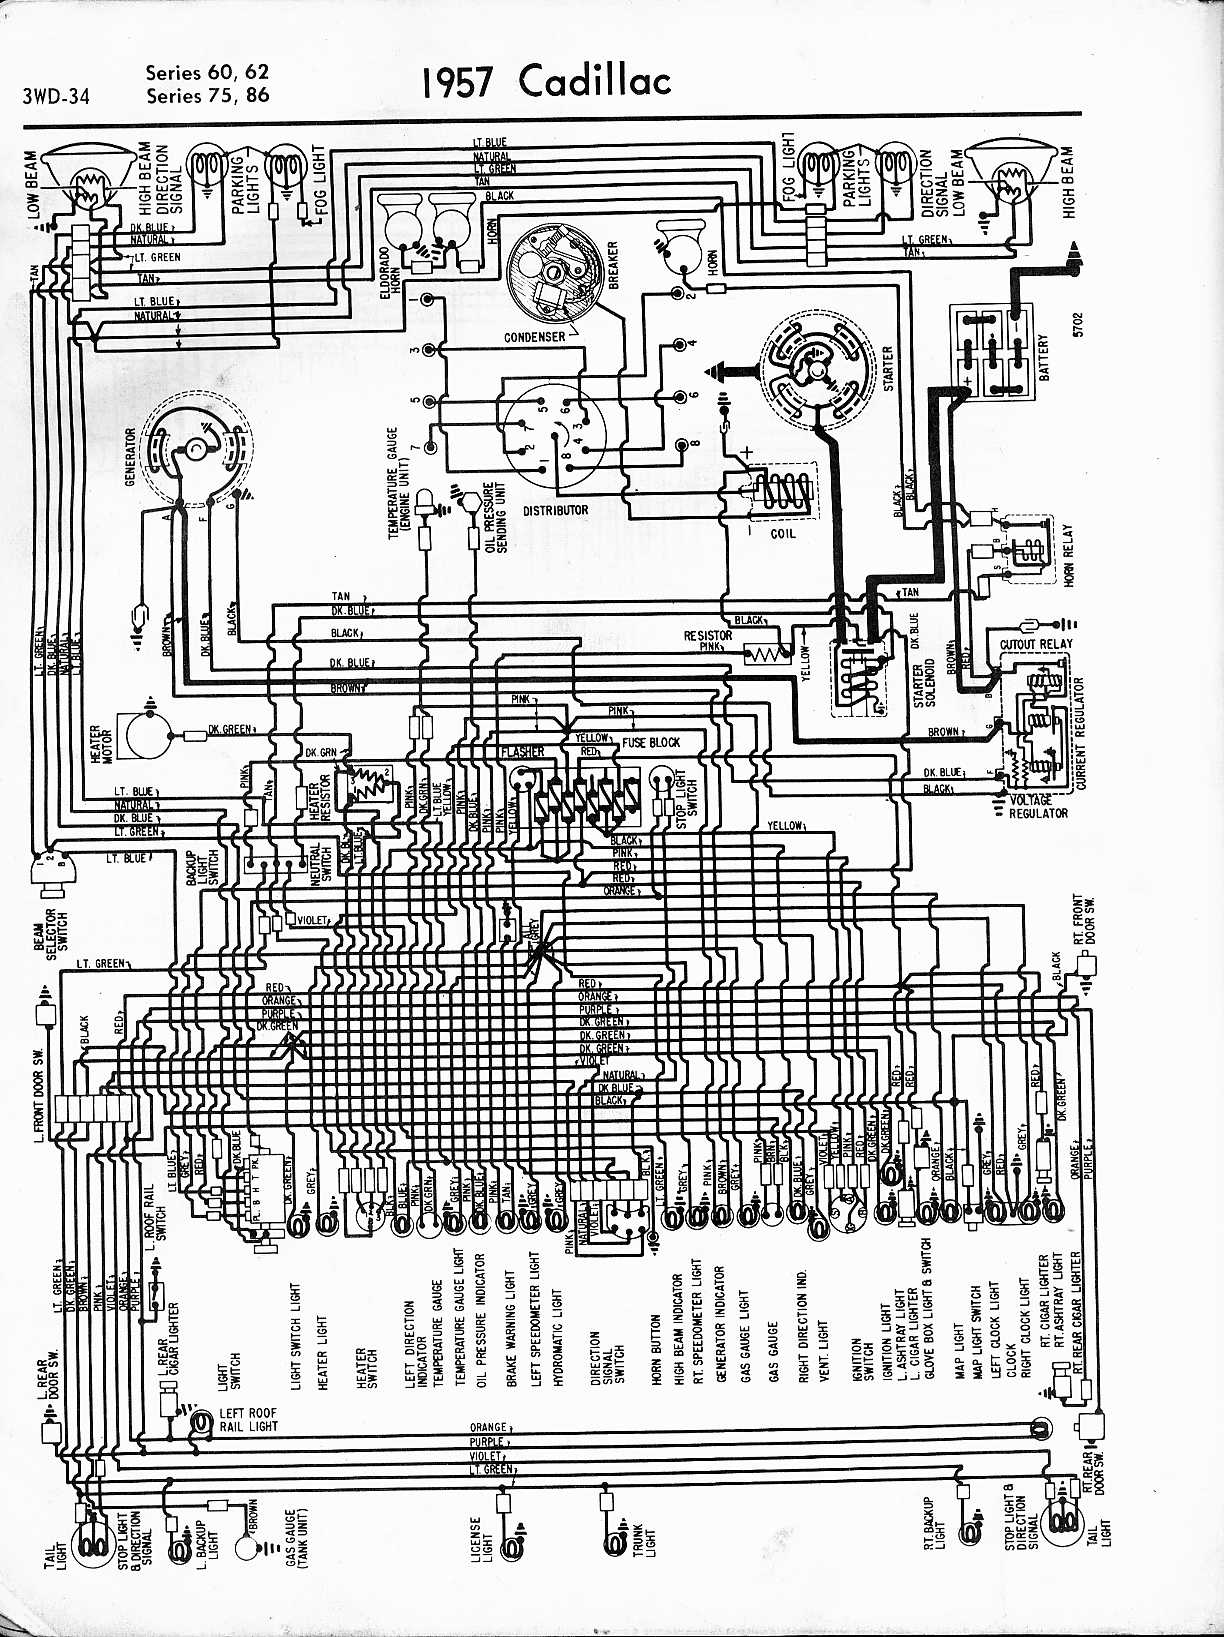 Cadillac Ignition System Wiring Diagram 2006 cadillac dts ... on